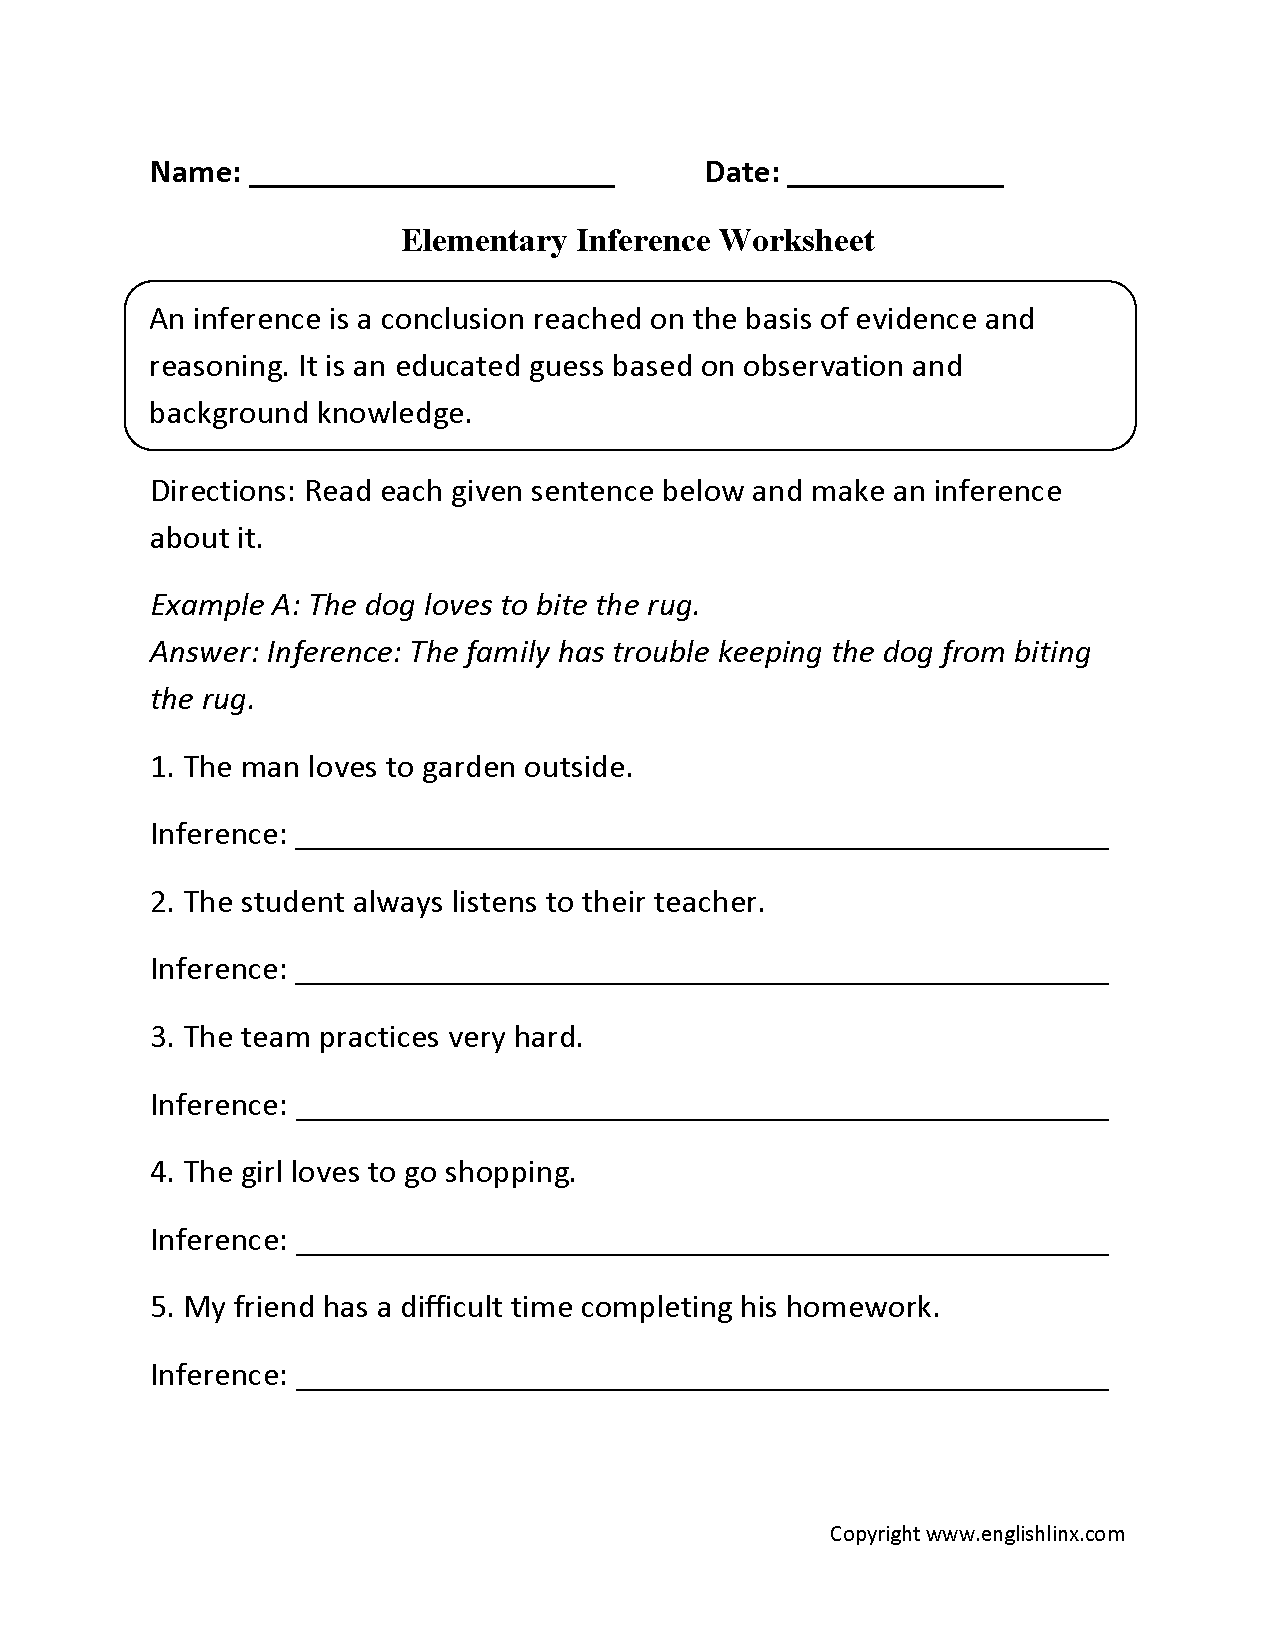 Elementary Inference Worksheets | Inference | Pinterest ...